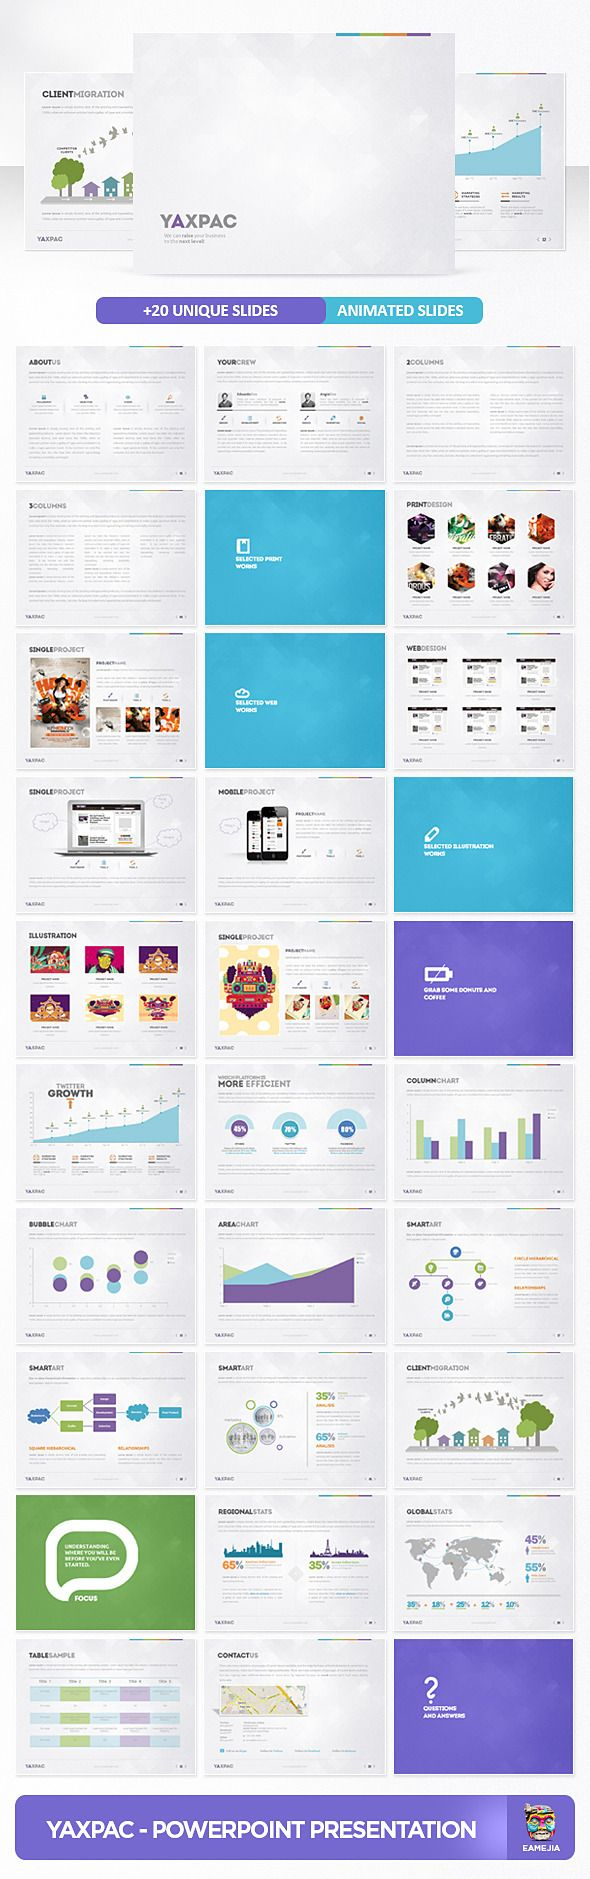 56 best powerpoint images on pinterest page layout branding yaxpac powerpoint presentation template toneelgroepblik Image collections